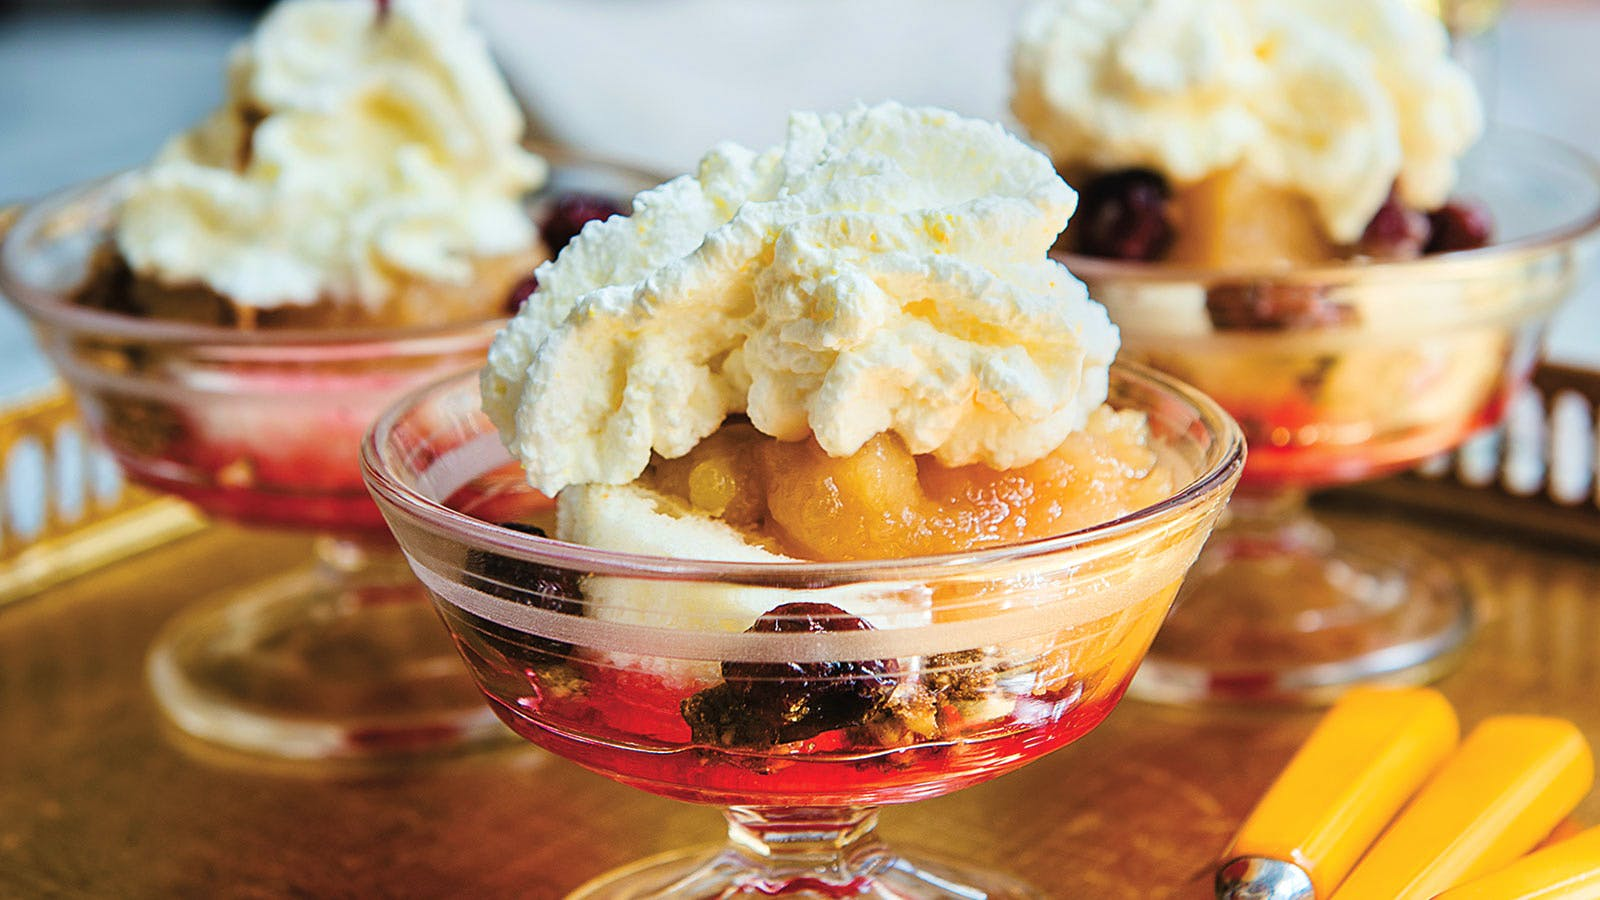 Fall Fruit Parfaits with Hazelnut Crumble and Frangelico Cream